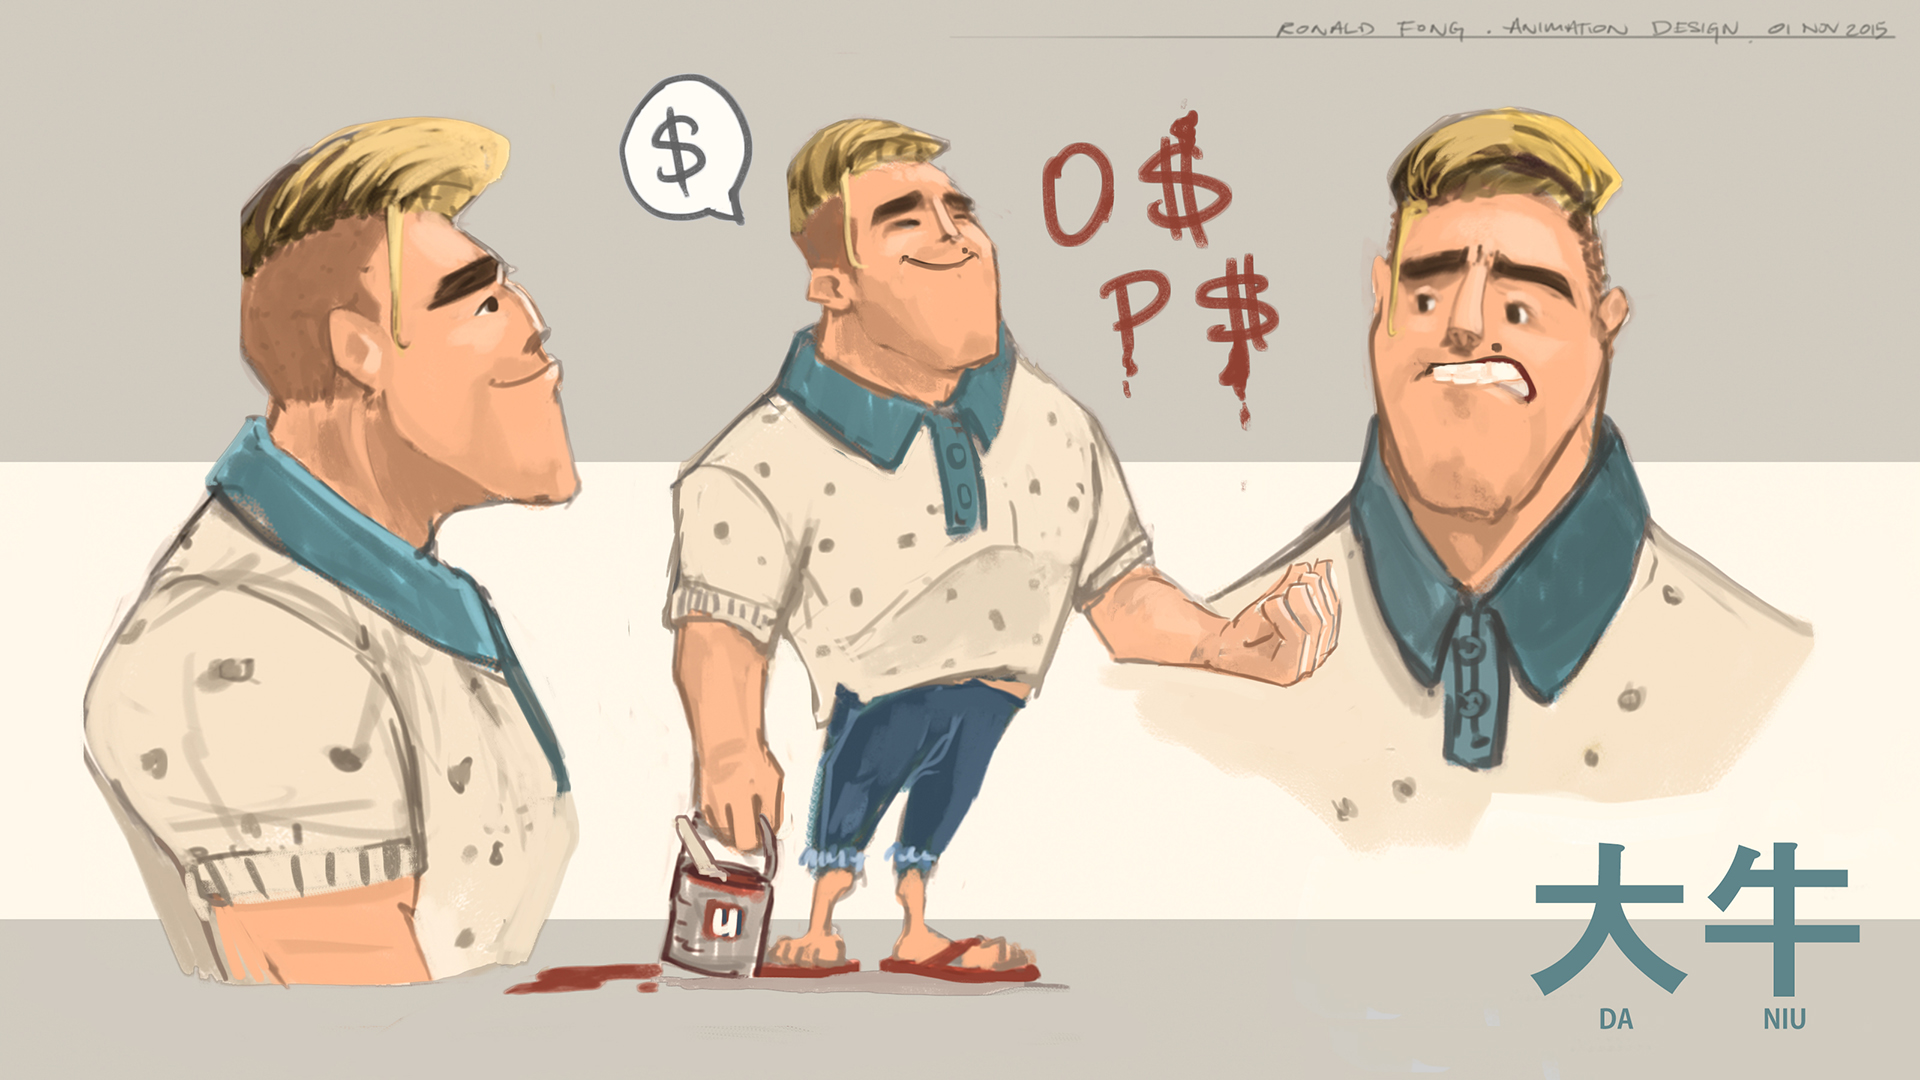 Da Niu - Singapore Hooligan Character Design Ronald Fong 1